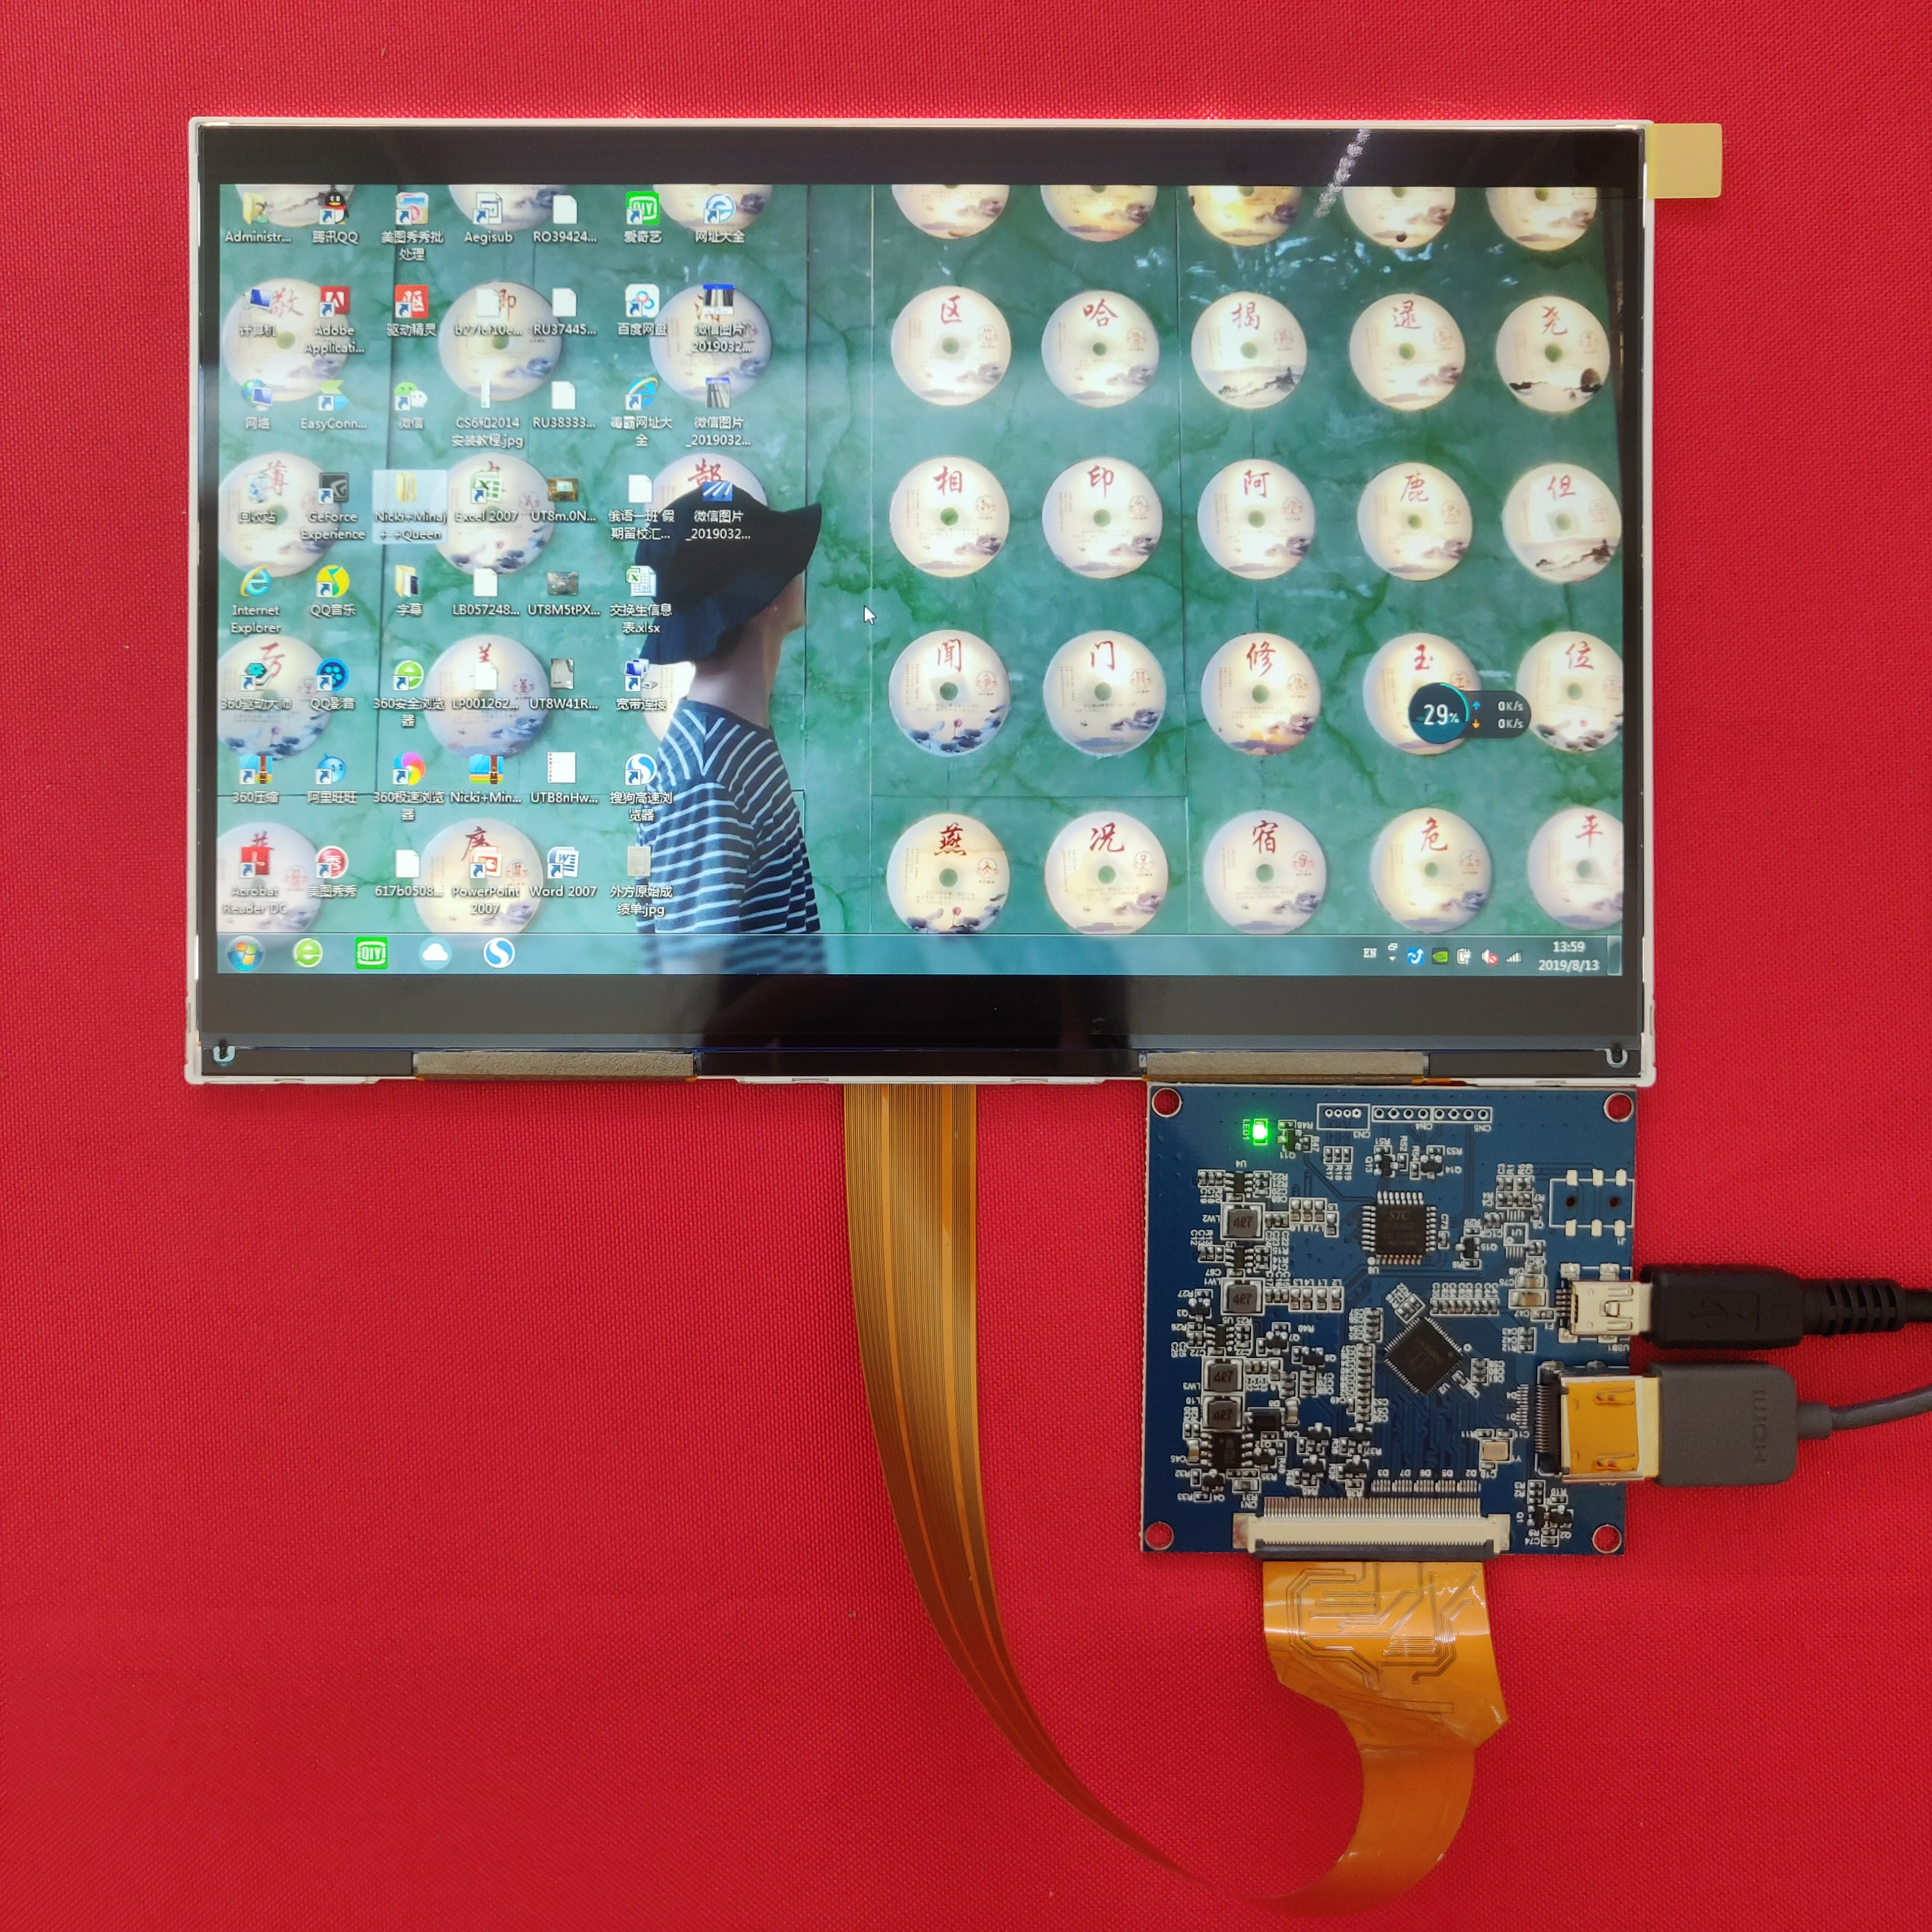 8 9 inch 2560*1600 2k 1440p IPS lcd display monitor with HDMI-MIPI driver  board 50hz for DIY DLP 3d printer Raspberry PI 3 PI 4b